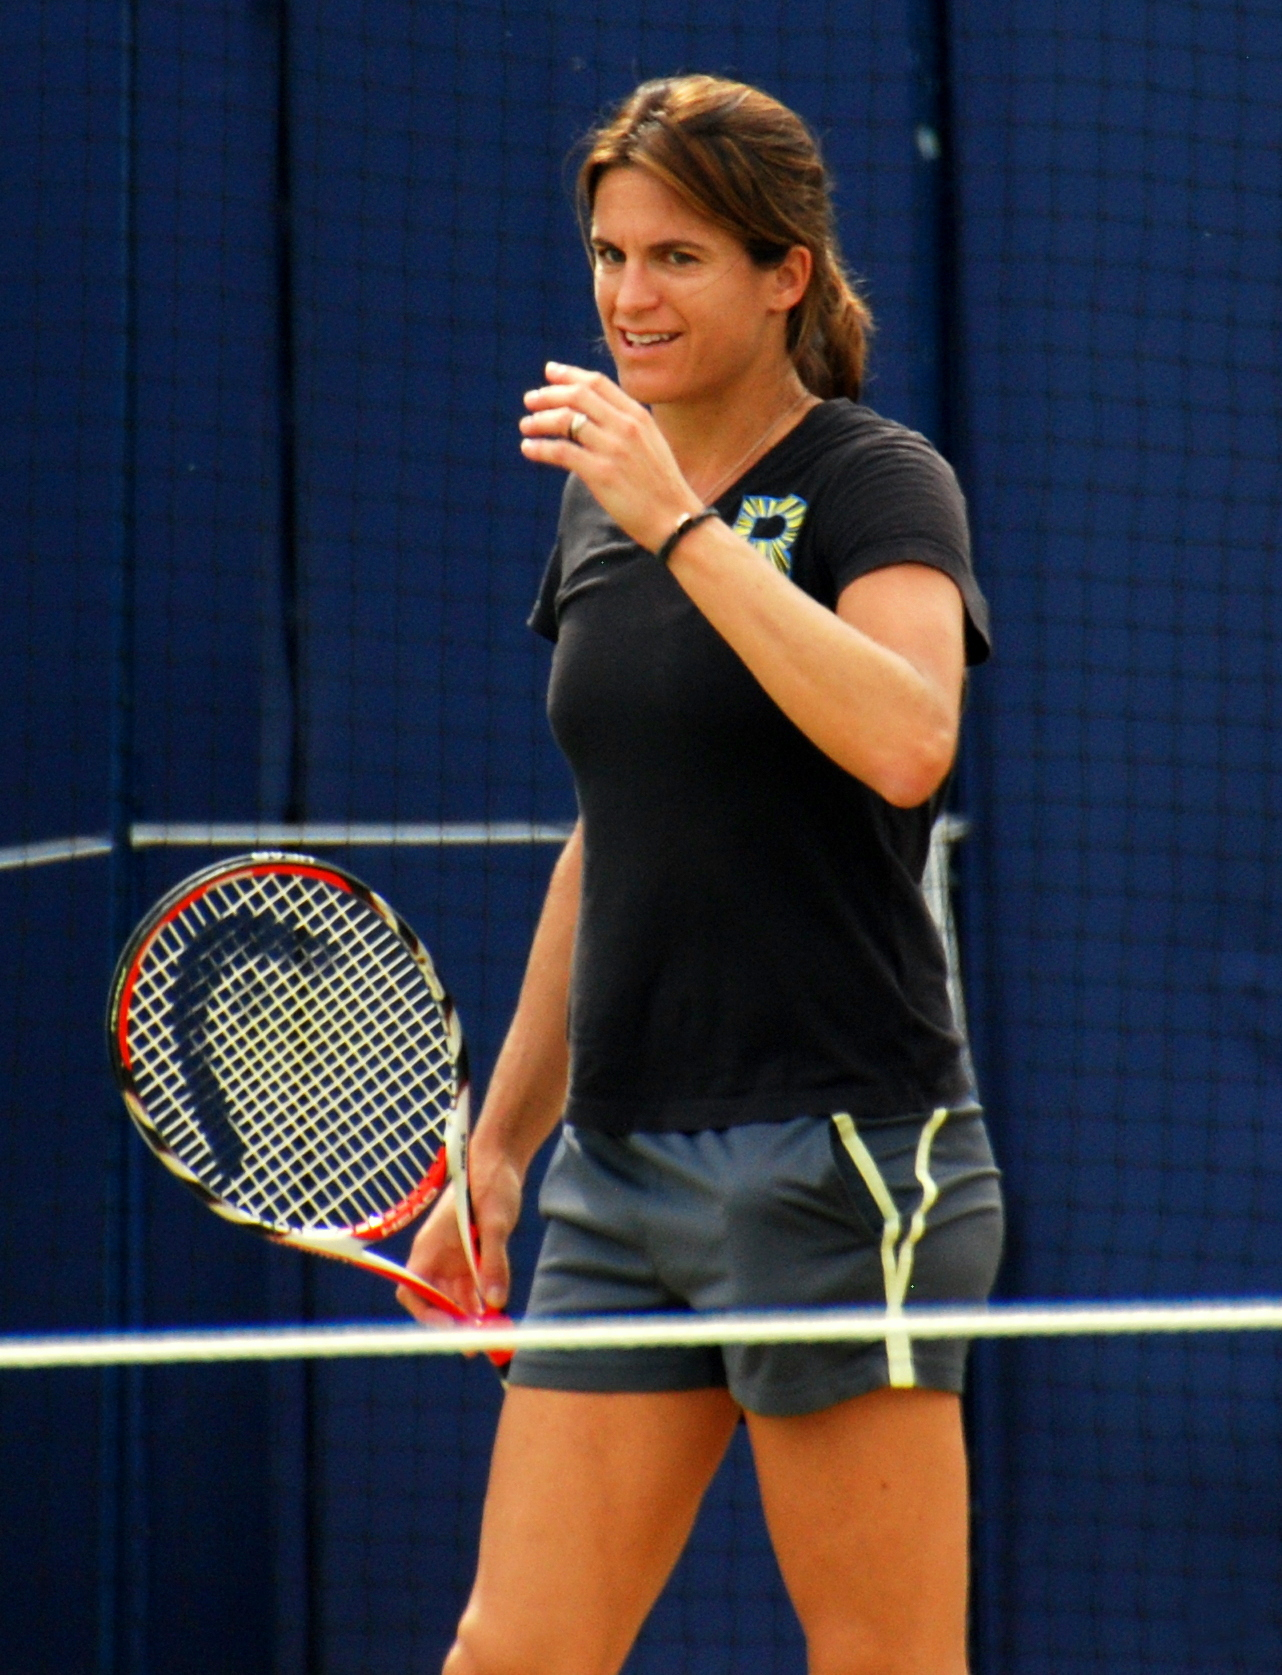 Amelie_Mauresmo_at_the_Aegon_Championships_2014.jpg